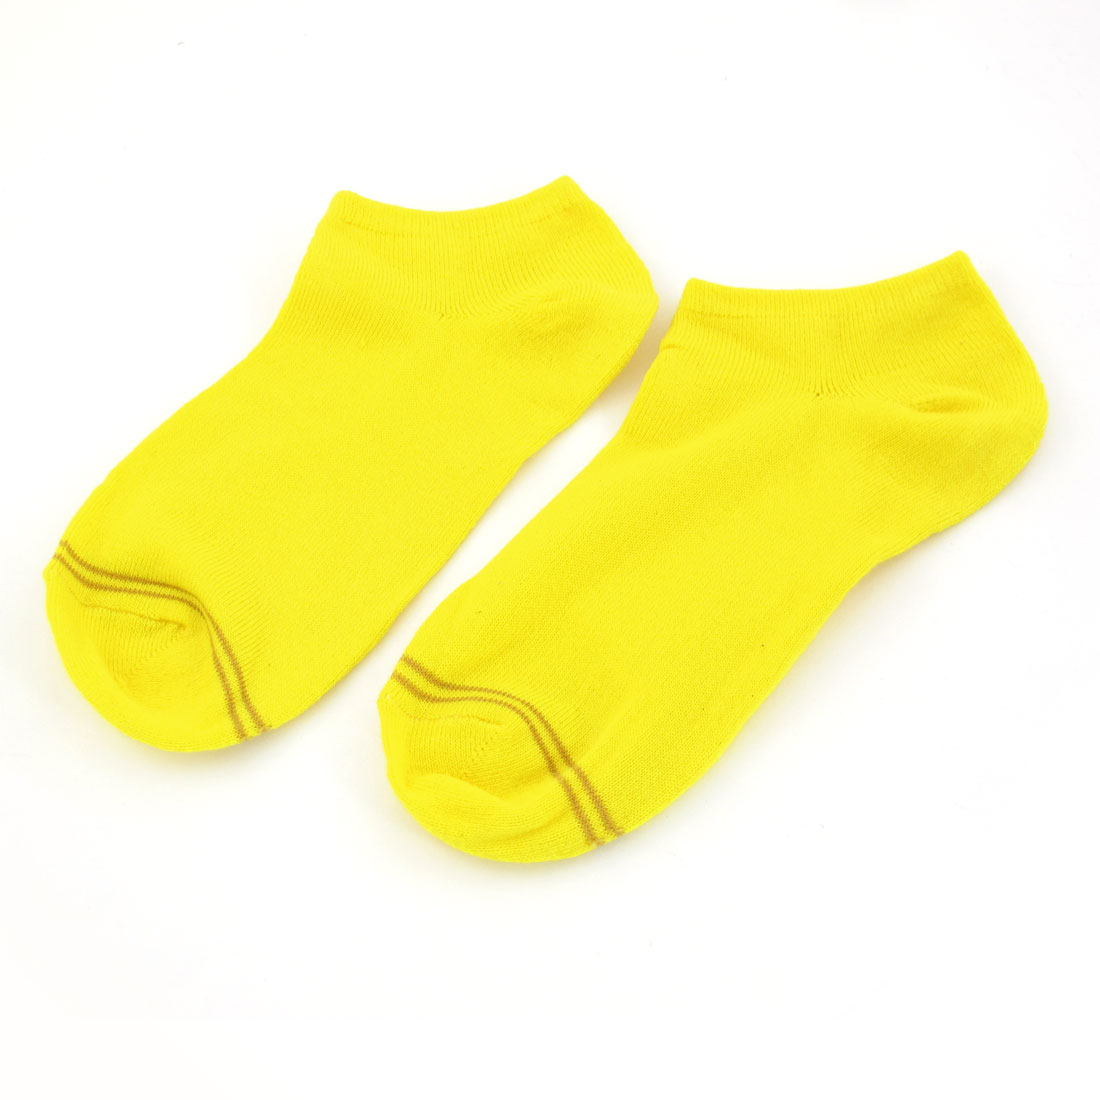 Pair Yellow Low Cut Ankle High Elastic Socks for Women